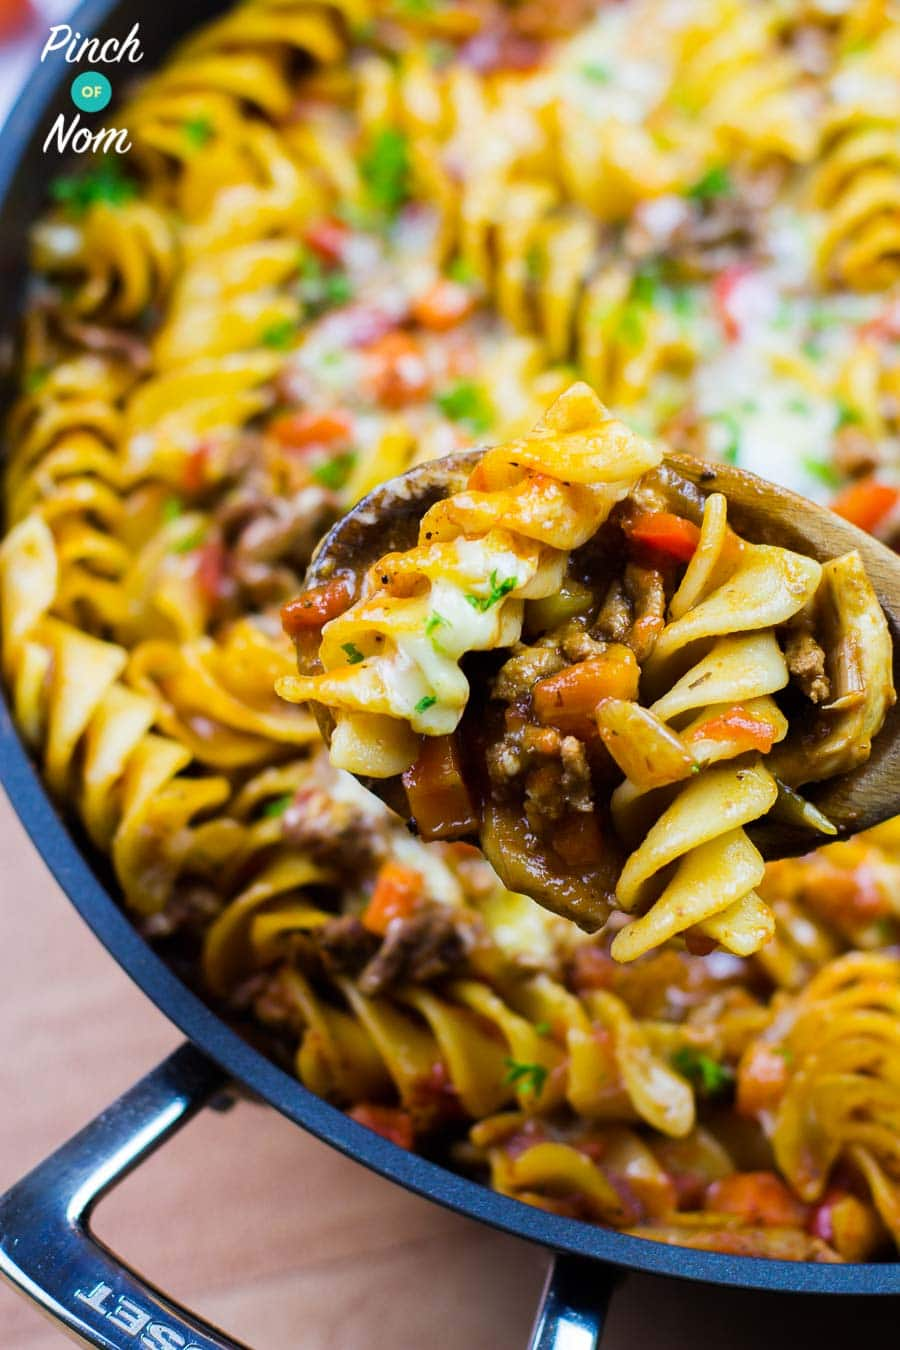 Syn Free Pasta Bolognese Bake | Slimming World